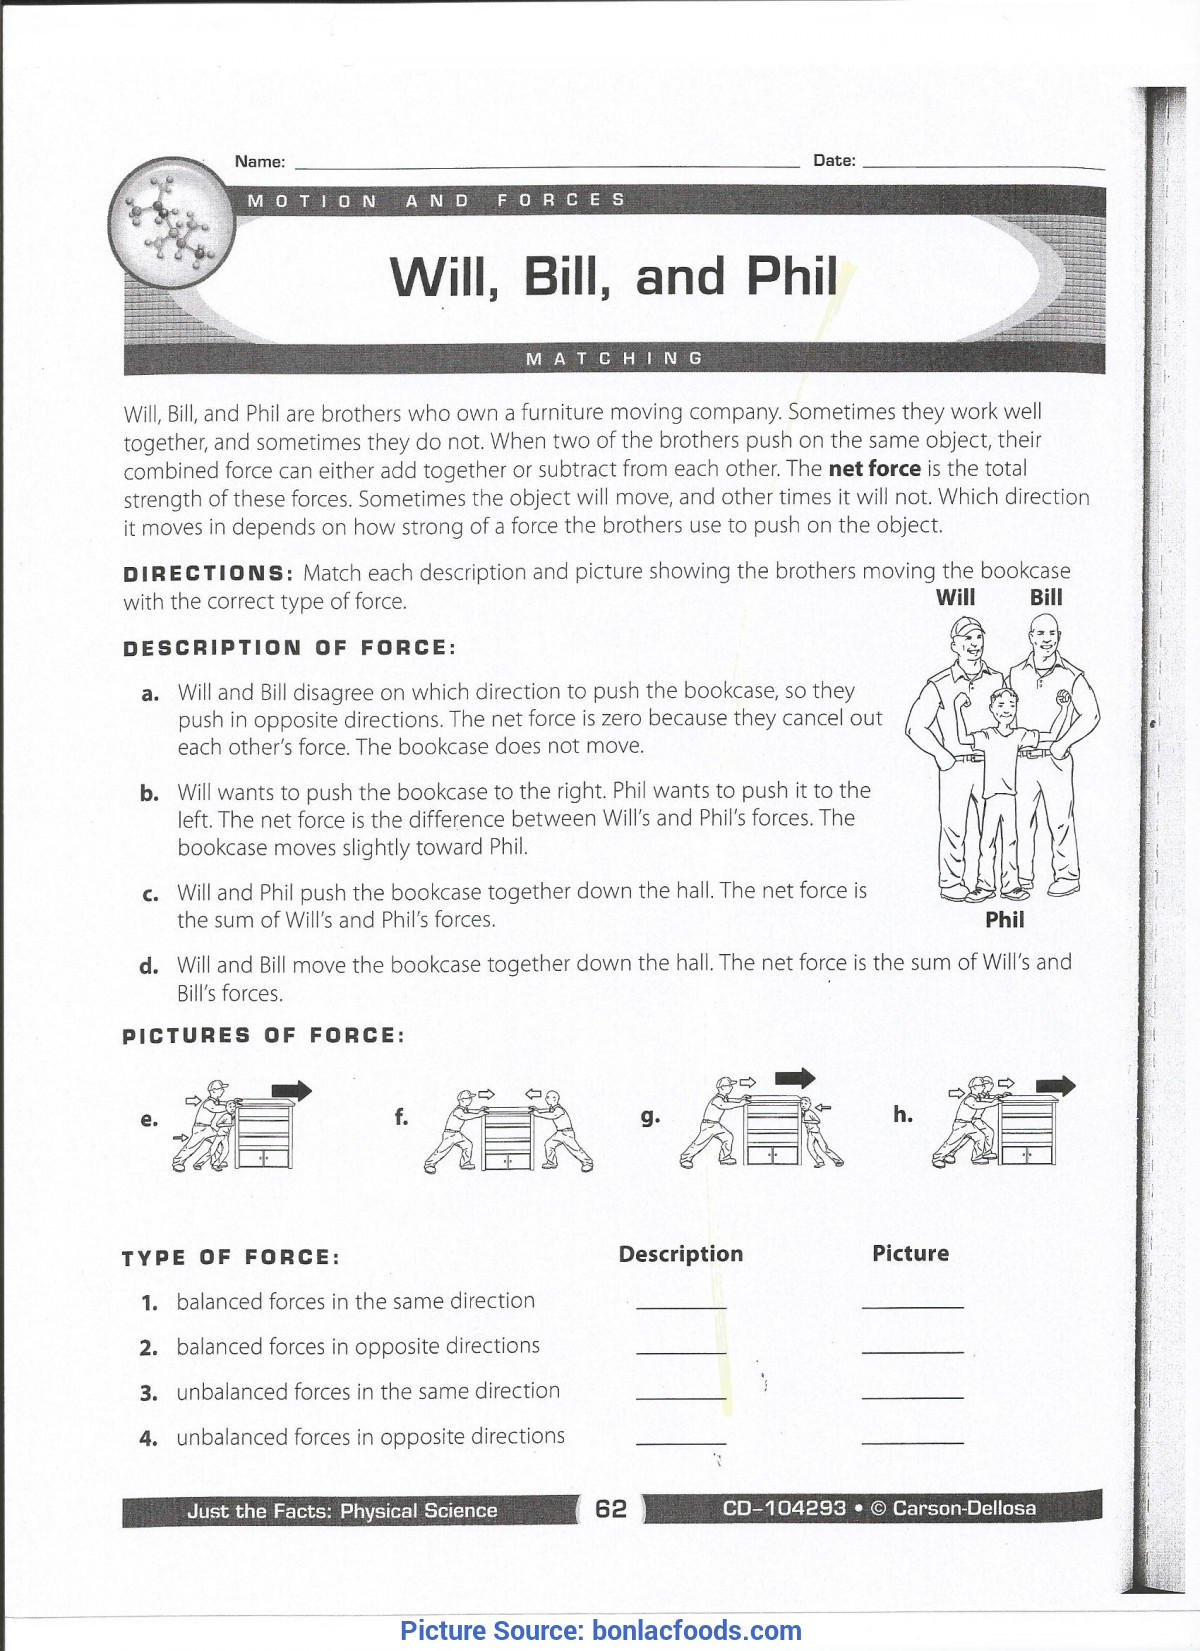 Scientific Method Worksheet 5th Grade Excellent 3rd Grade Lesson Plans force and Motion 5th